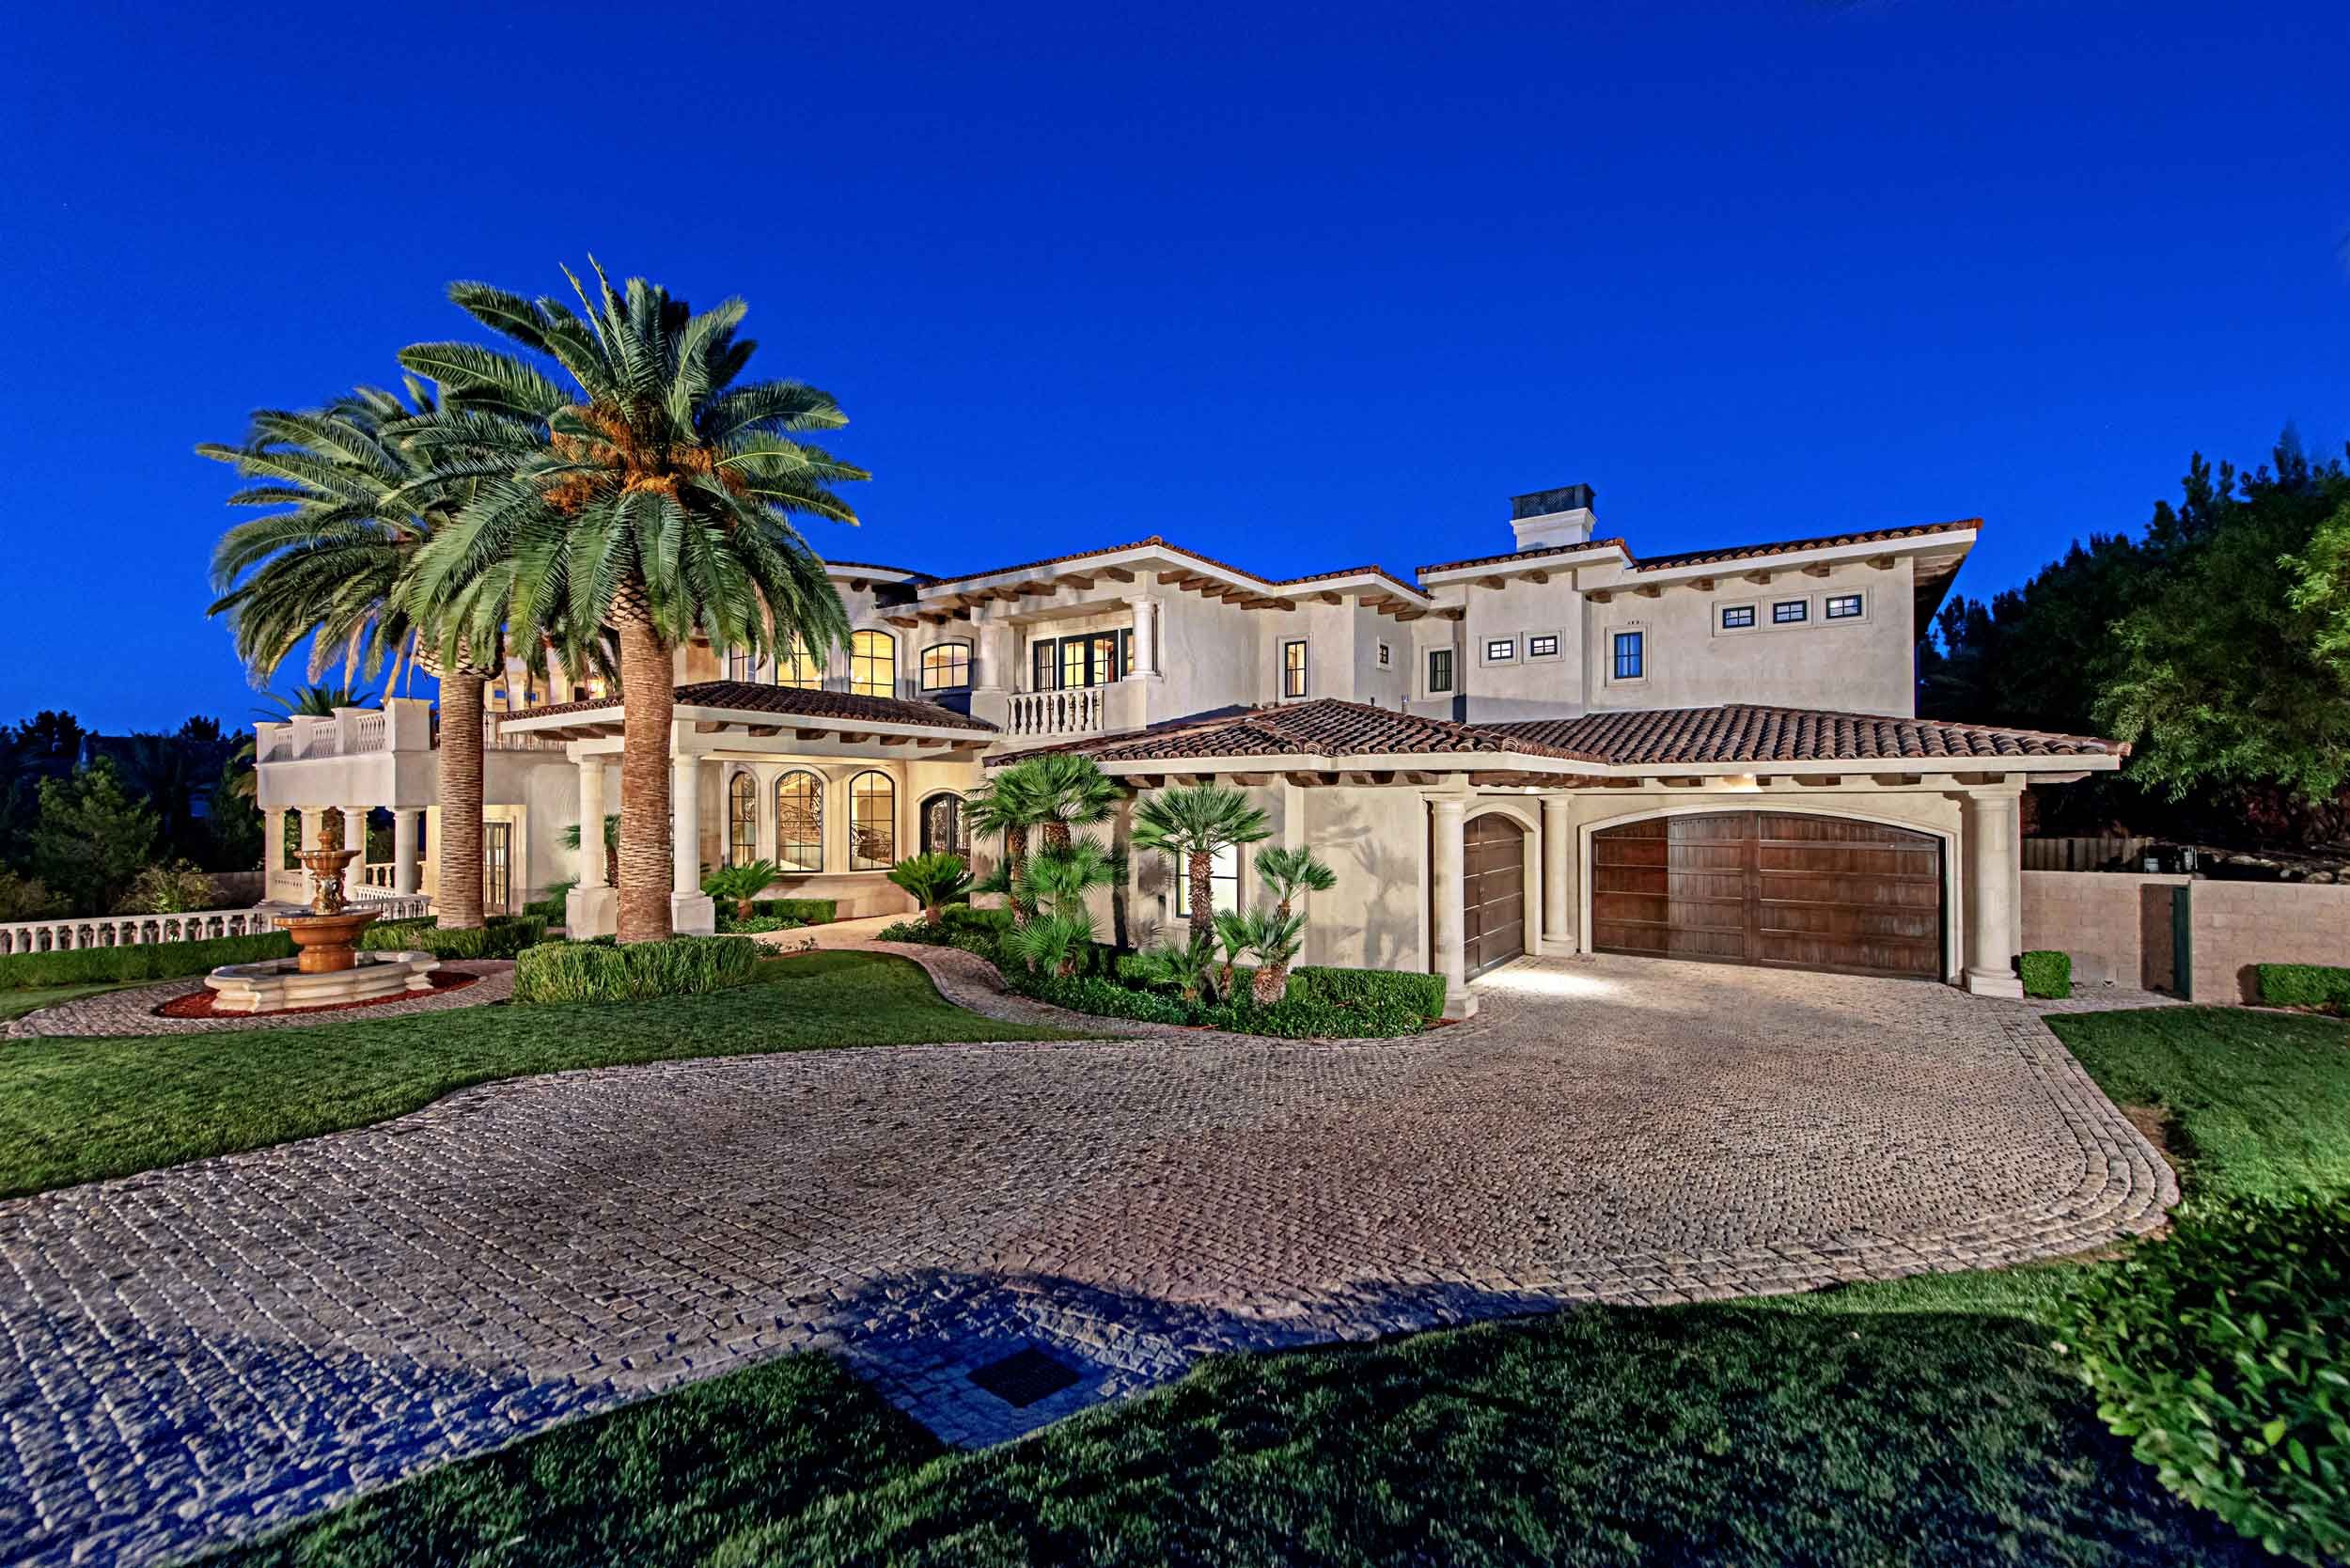 This opulent Tuscan-inspired estate lives up to the heady glamour of its Las Vegas setting.